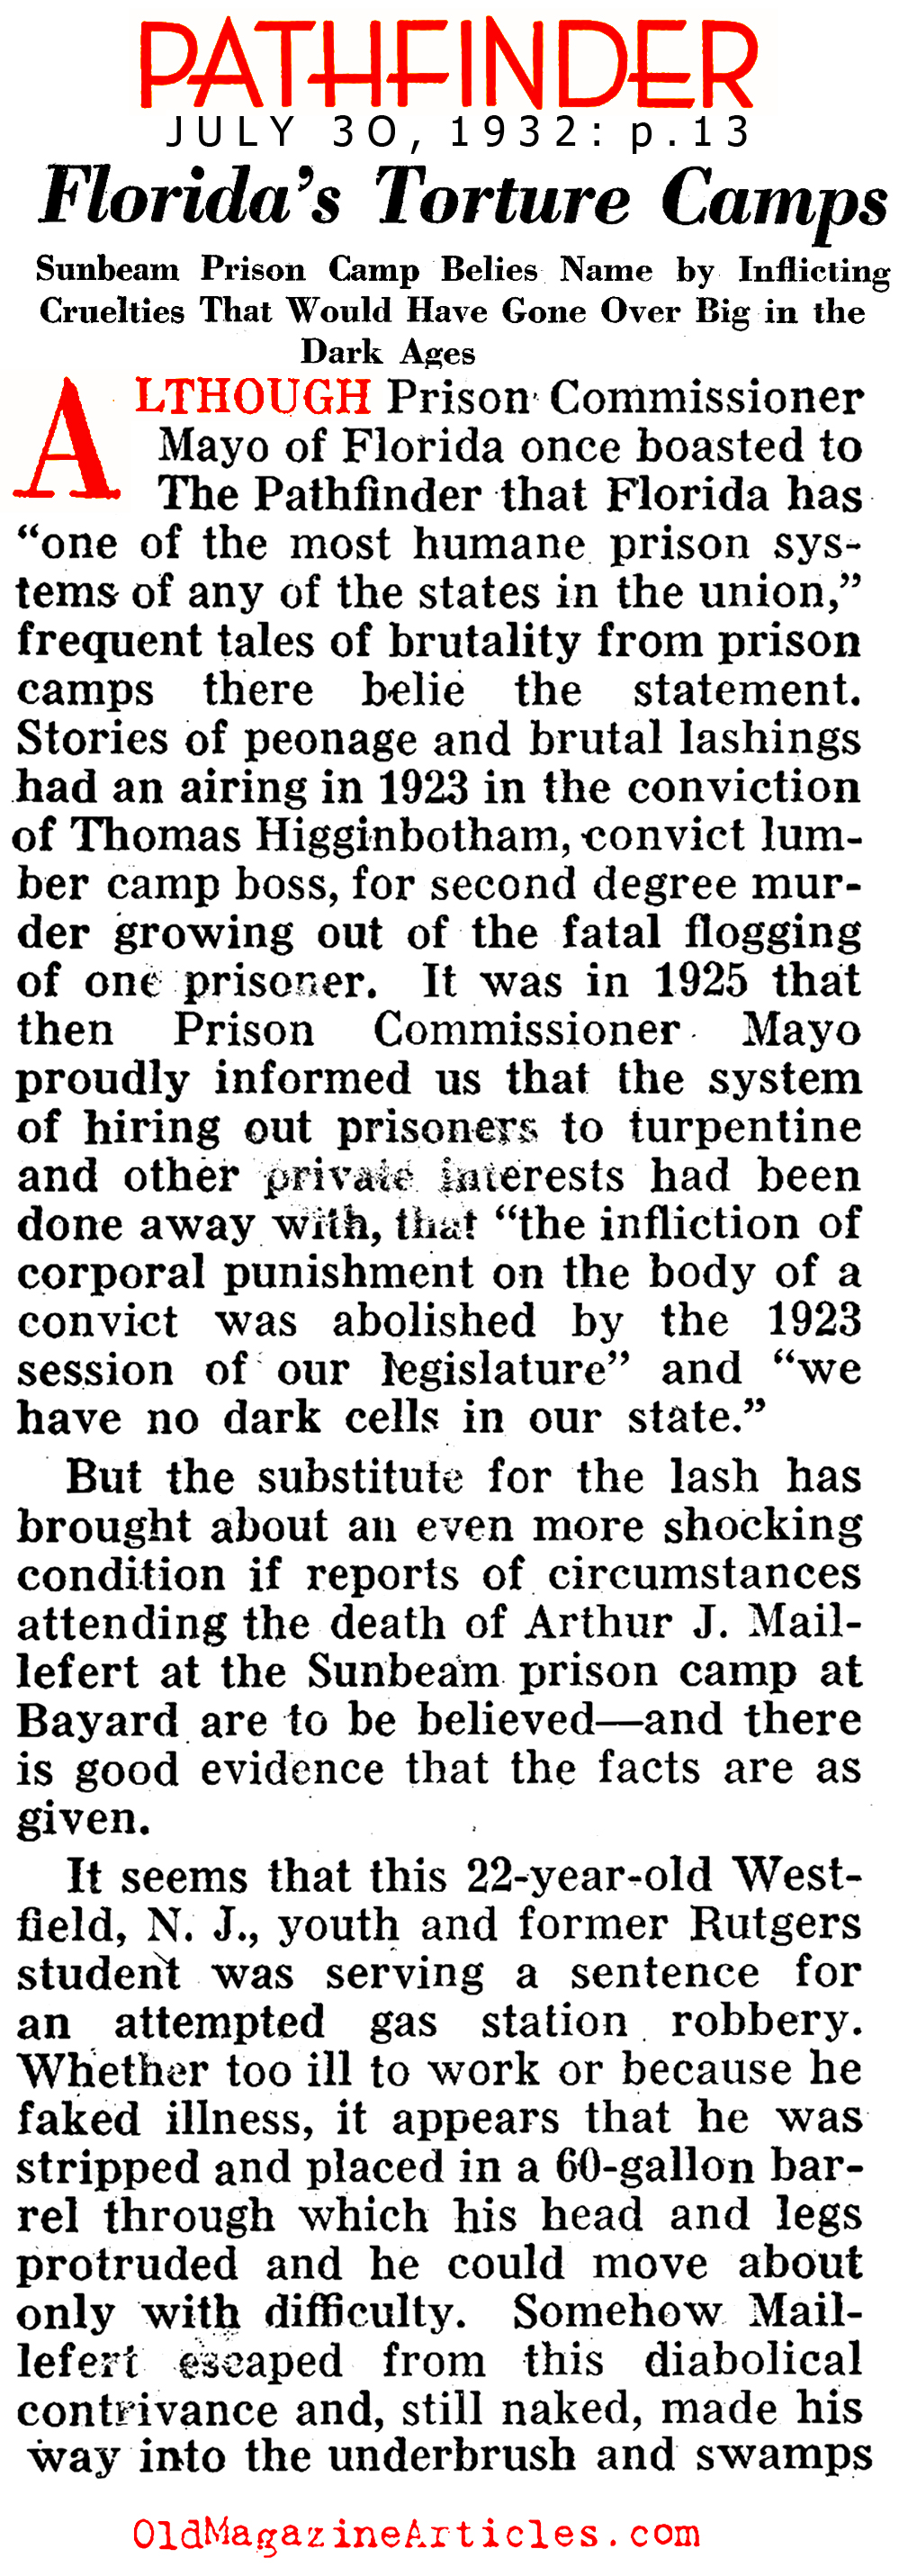 Abuses at Sunbeam Prison (Pathfinder Magazine, 1932)